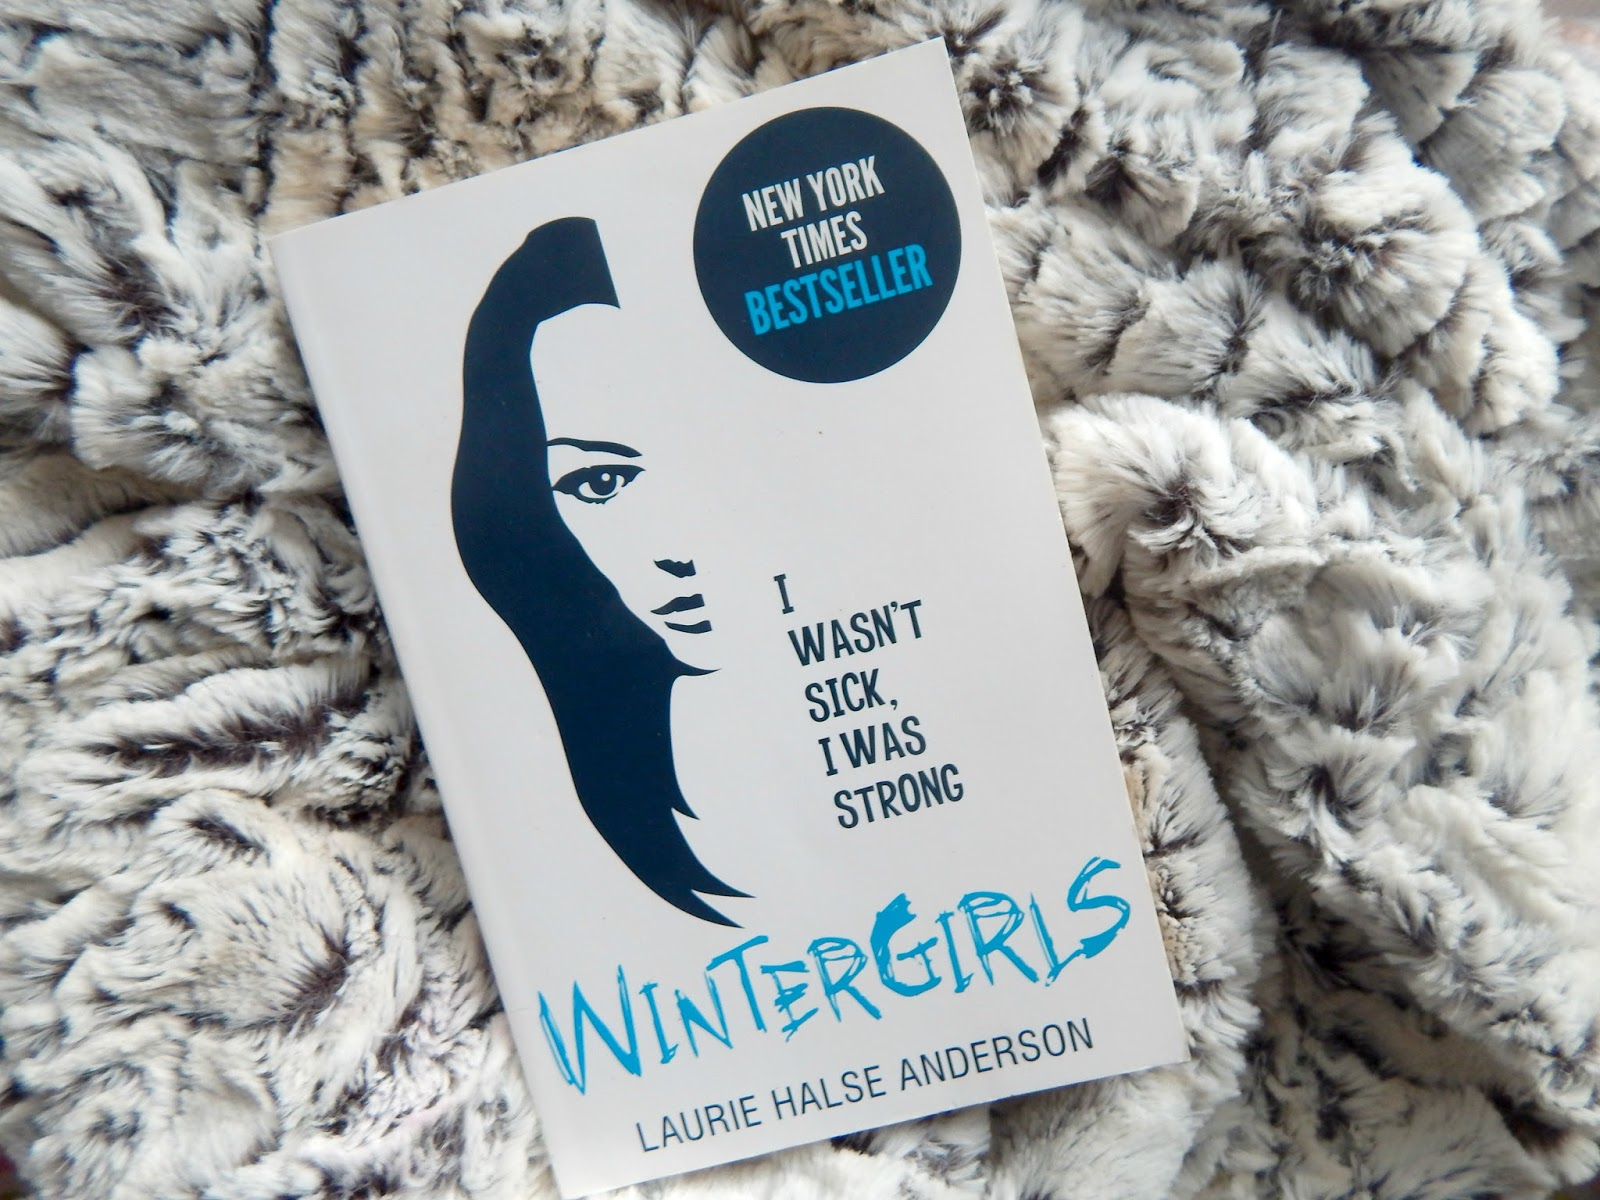 wintergirls by laurie halse anderson Celebrated author laurie halse anderson (whose breakthrough novel speak came out 10 years ago) excels at exploring and deconstructing the minds and motivations of troubled teens and gives the narrative an undeniable immediacy and urgency.